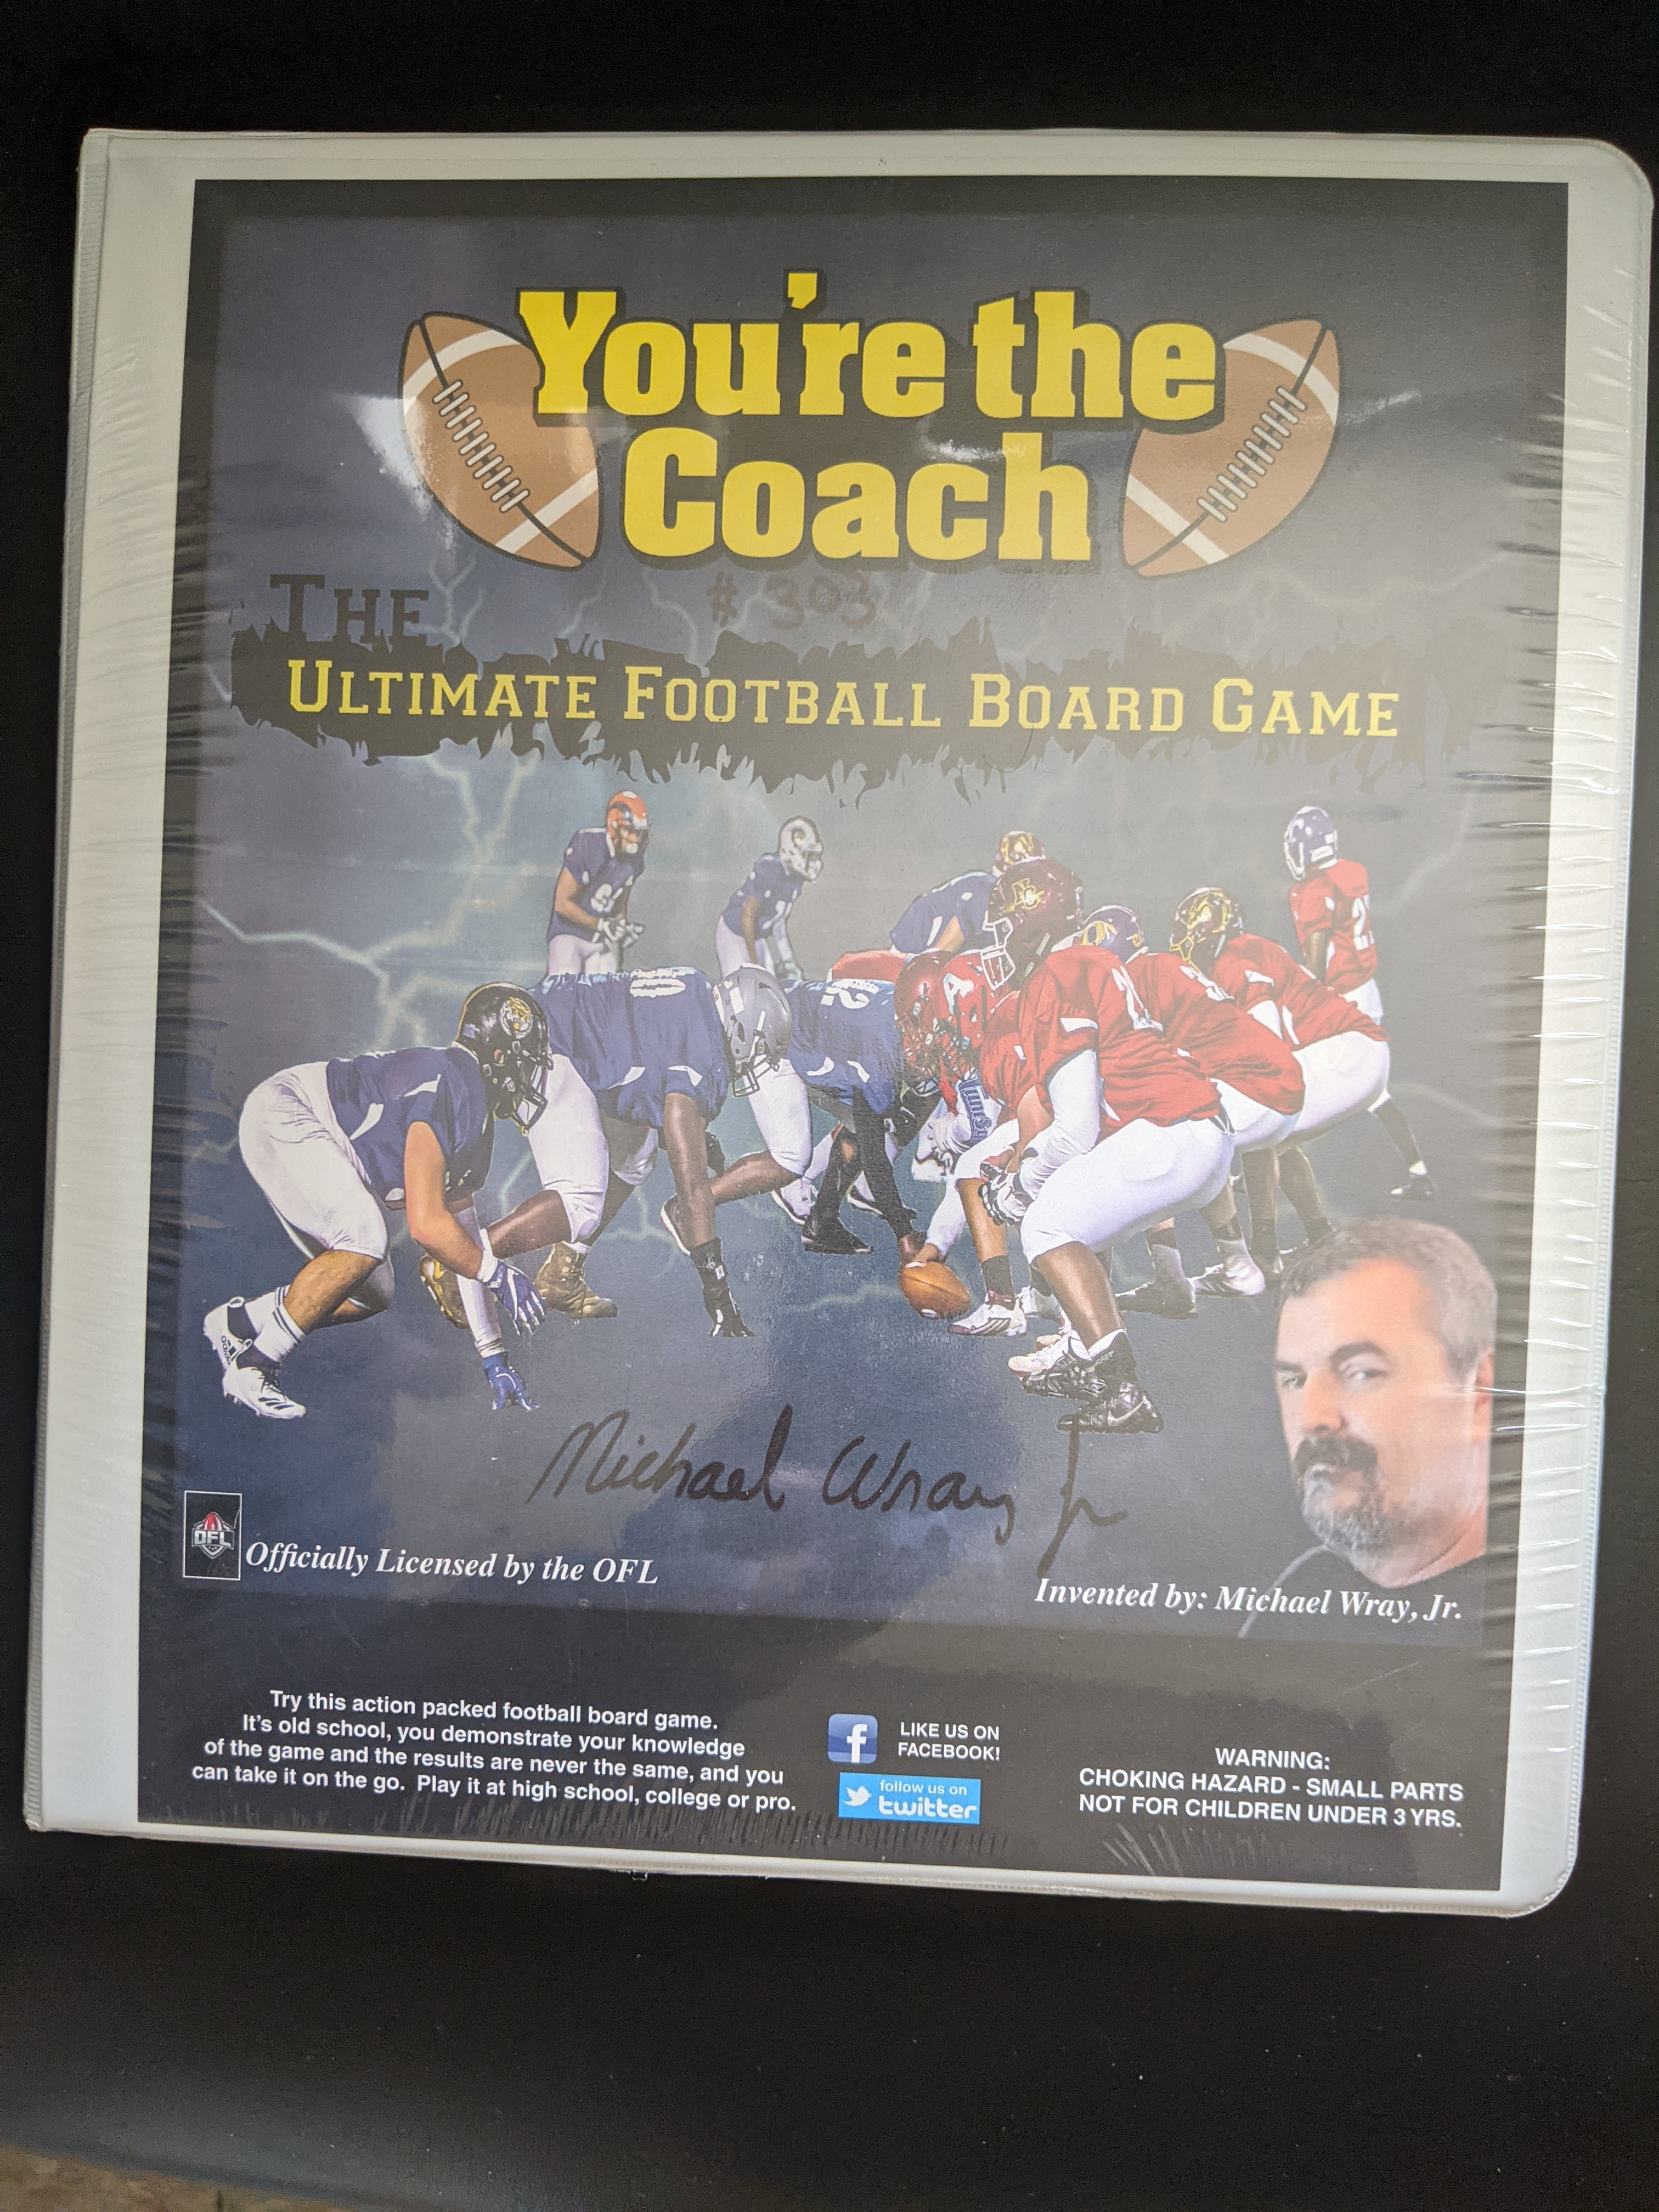 Youre the Coach